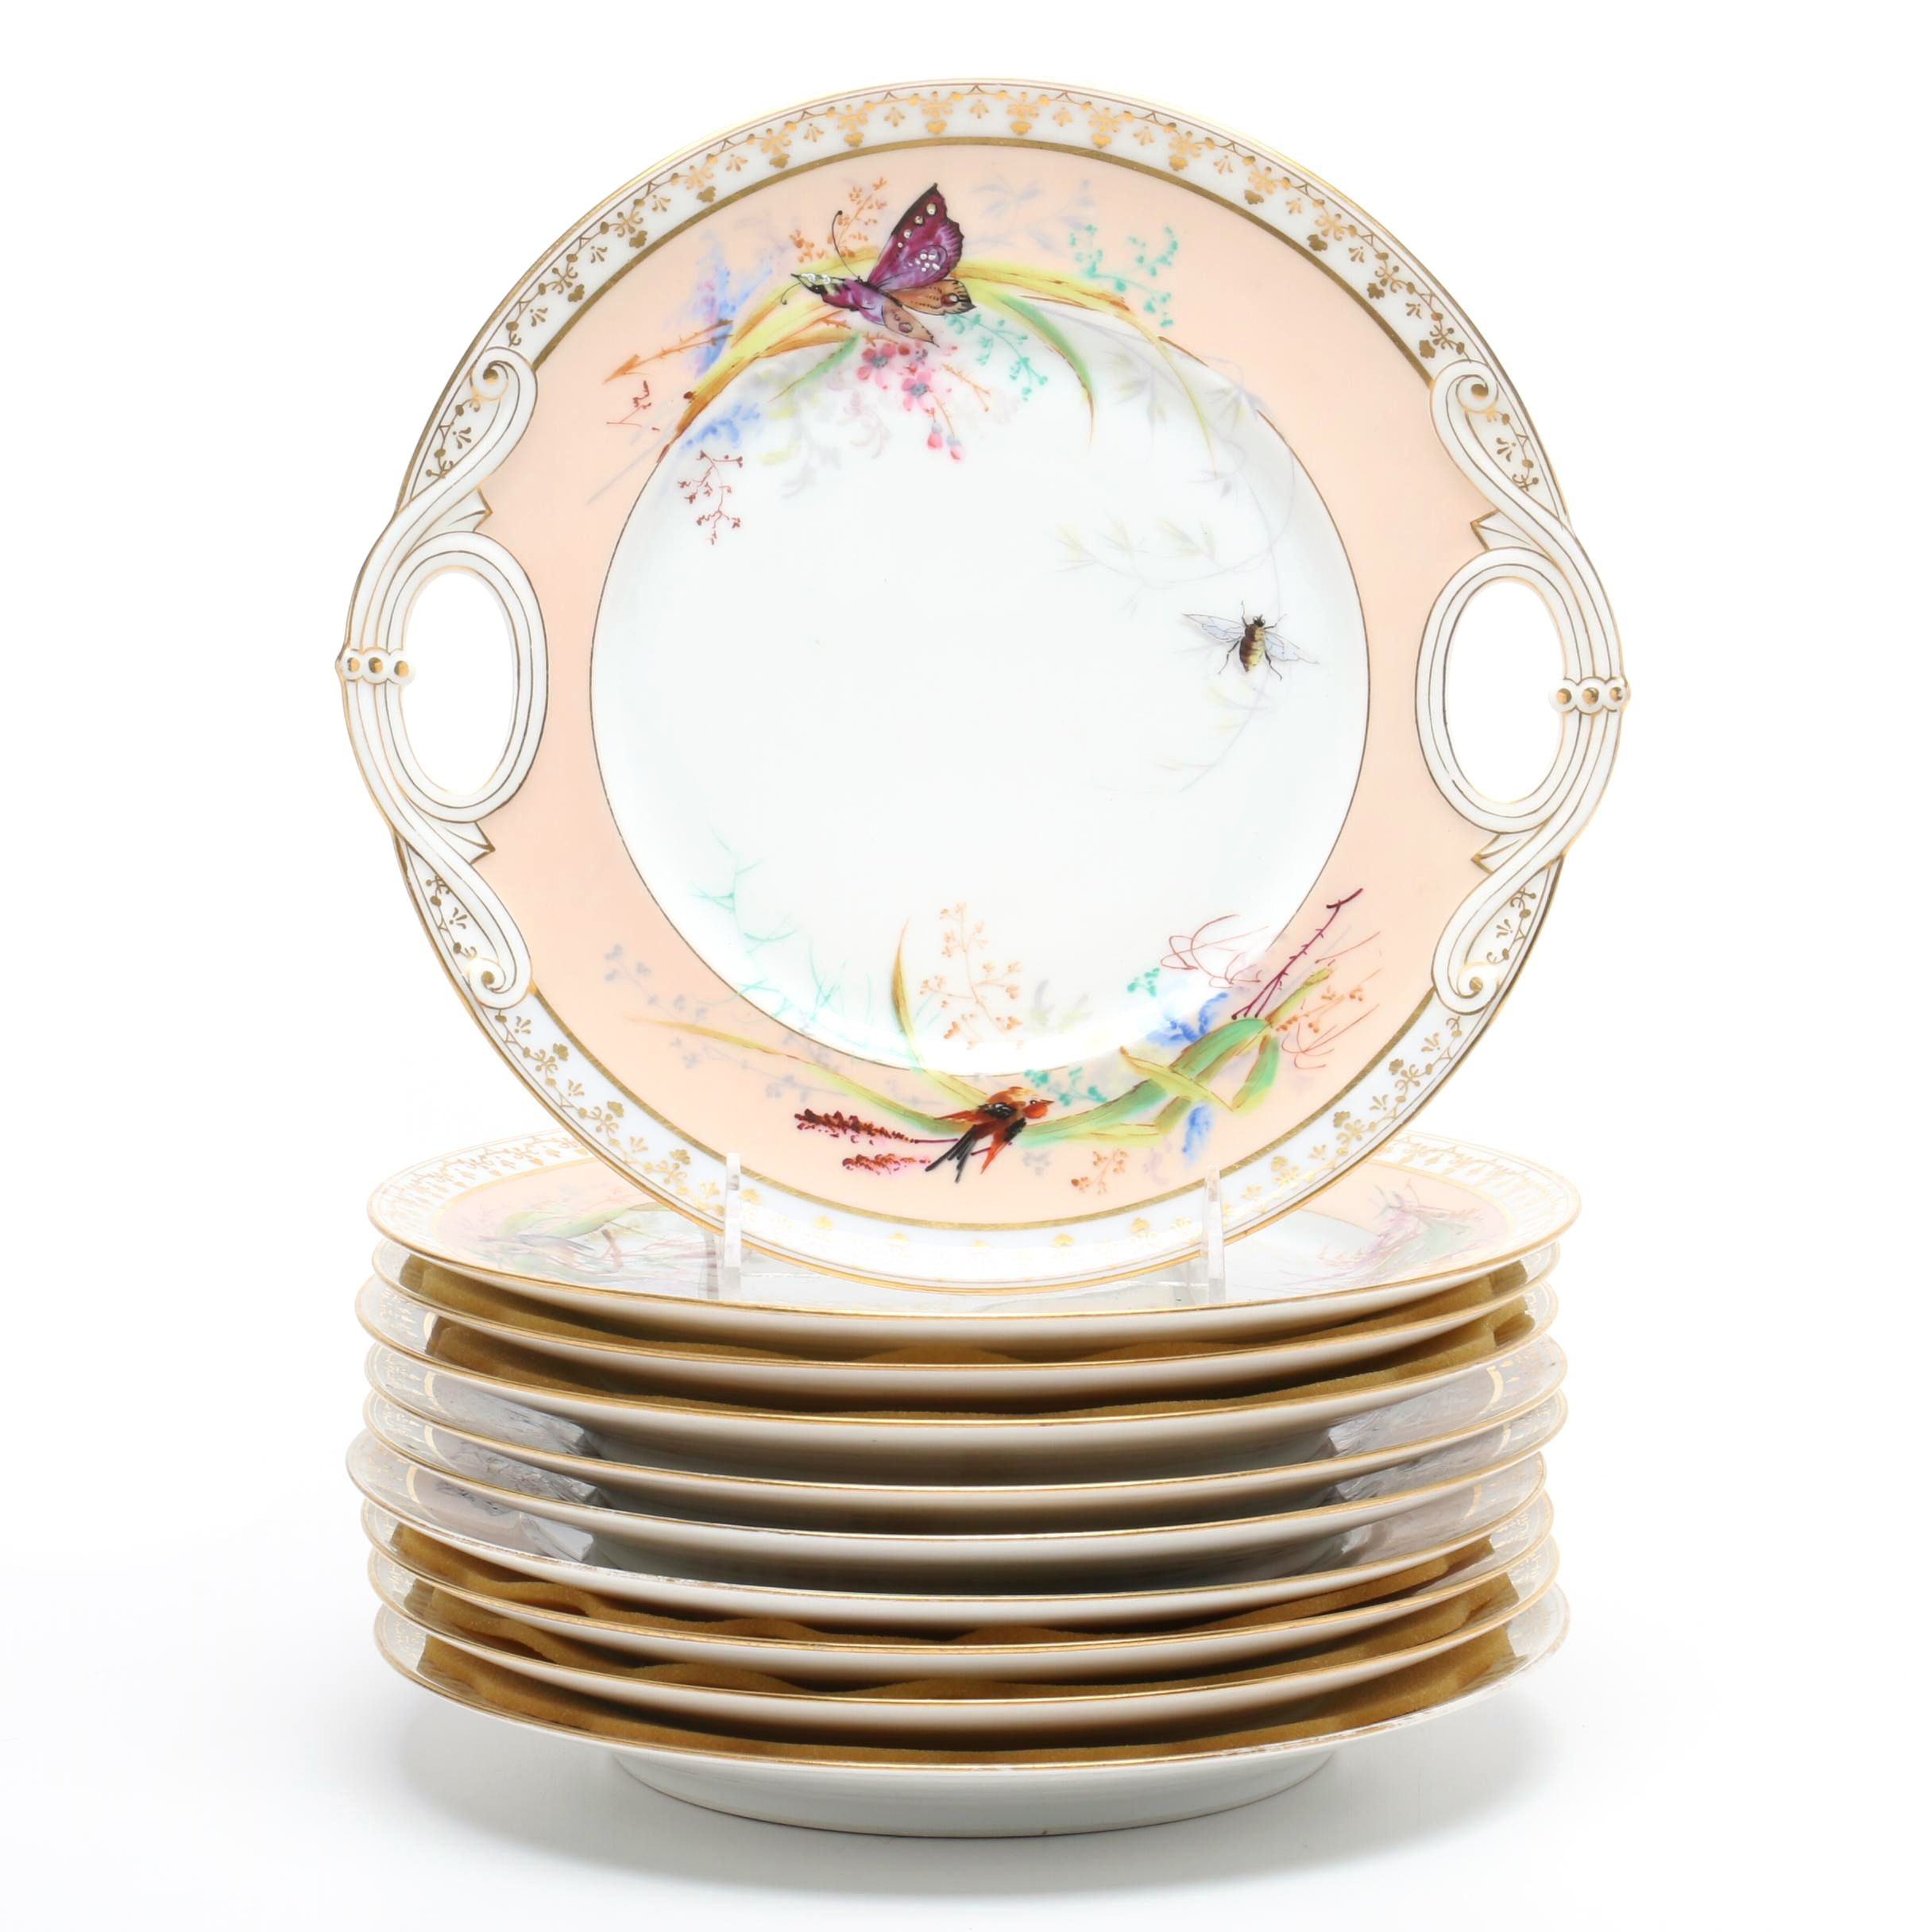 Haviland French Porcelain Dessert Plate Set, Mid to Late 19th Century